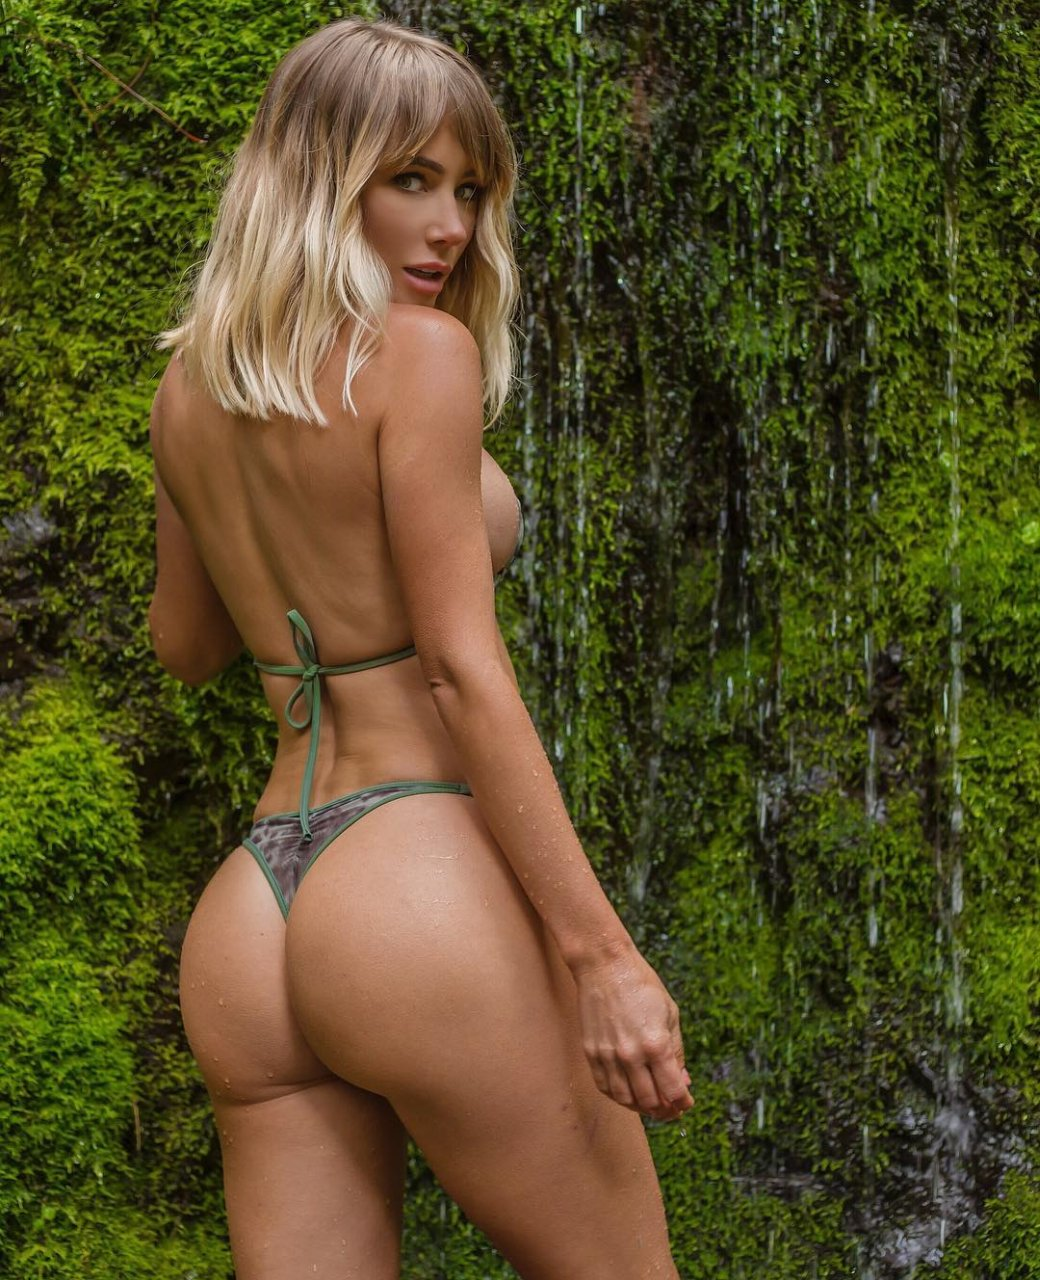 Sara jean underwood muse video. Lovely